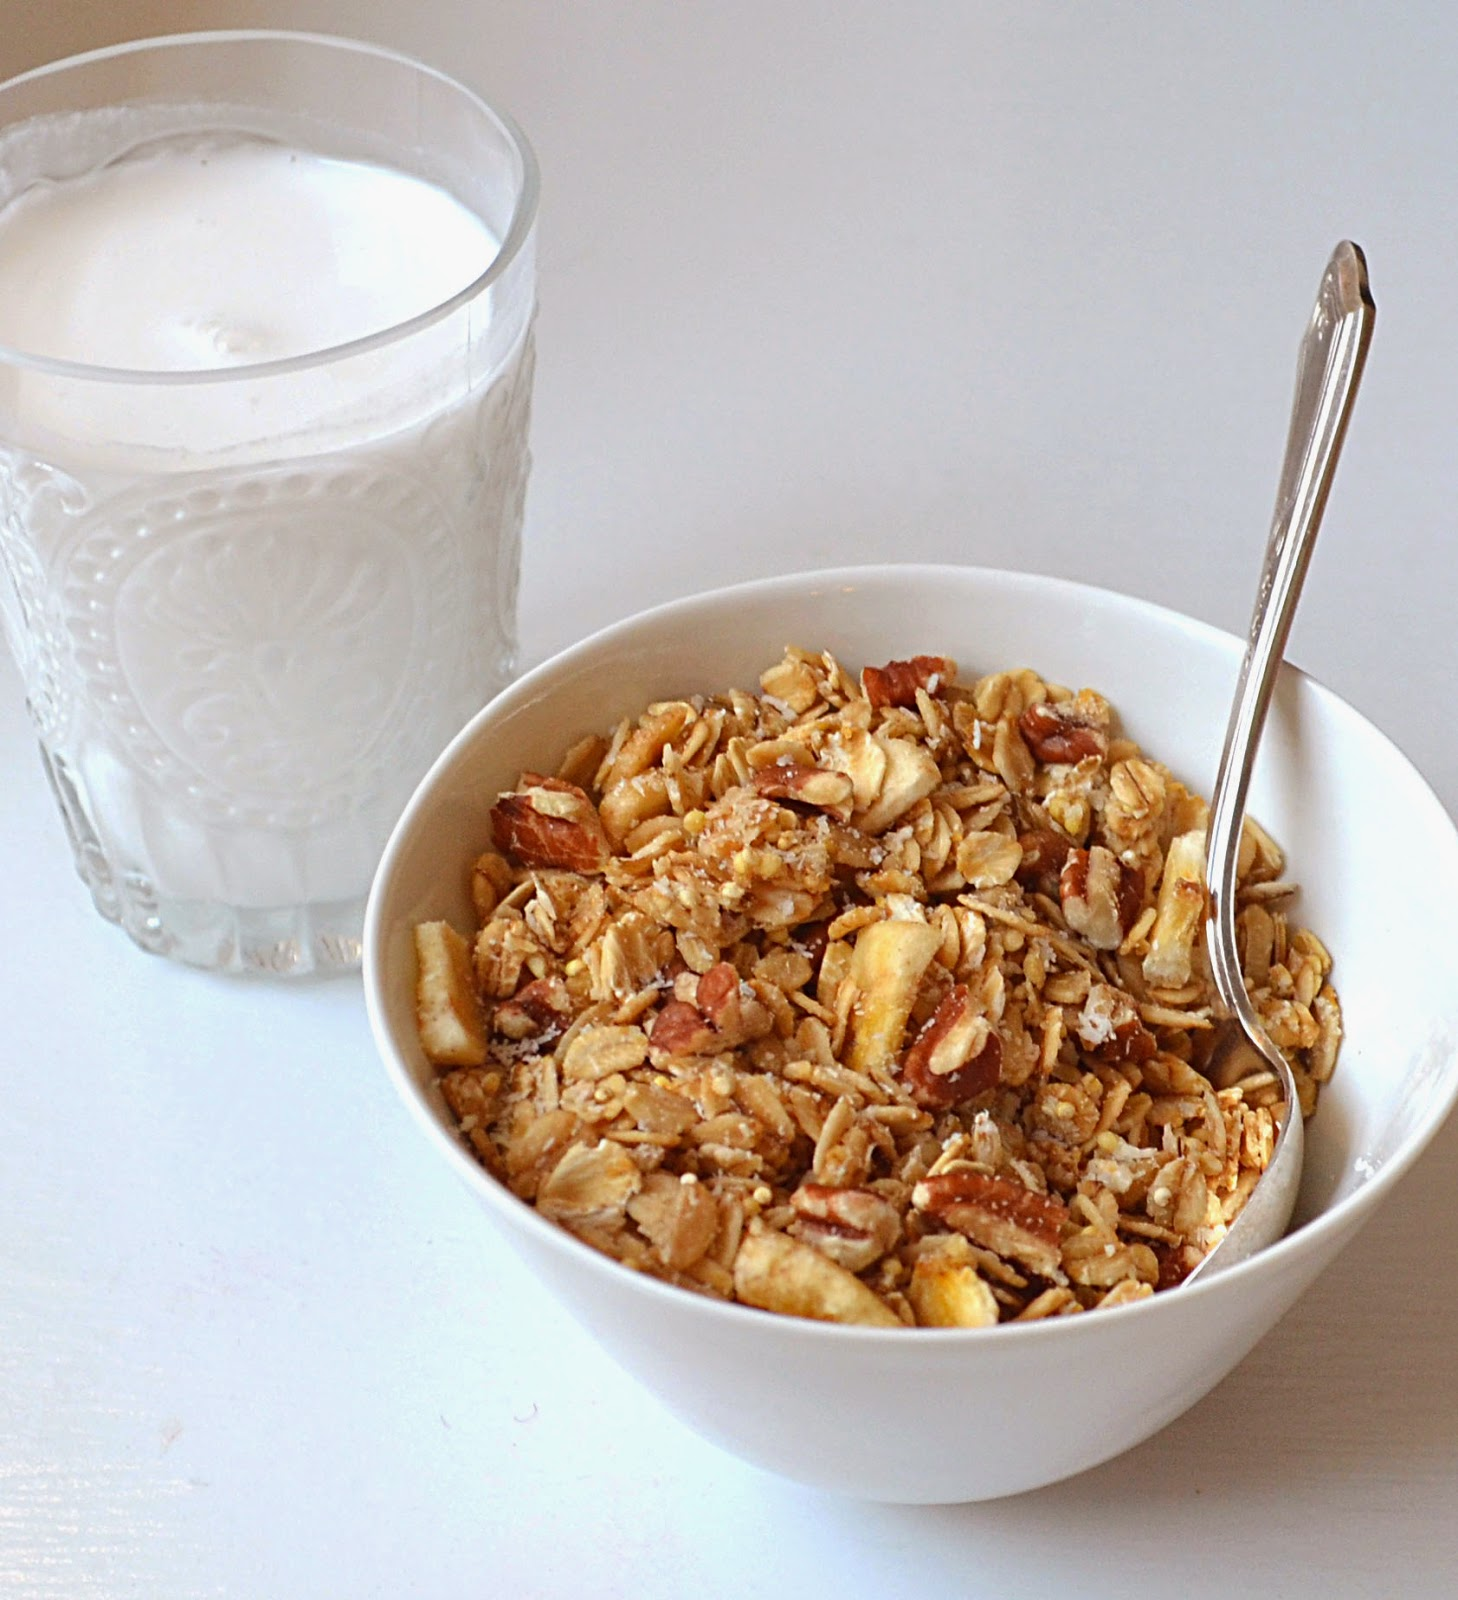 Toasted oats cereal recipe